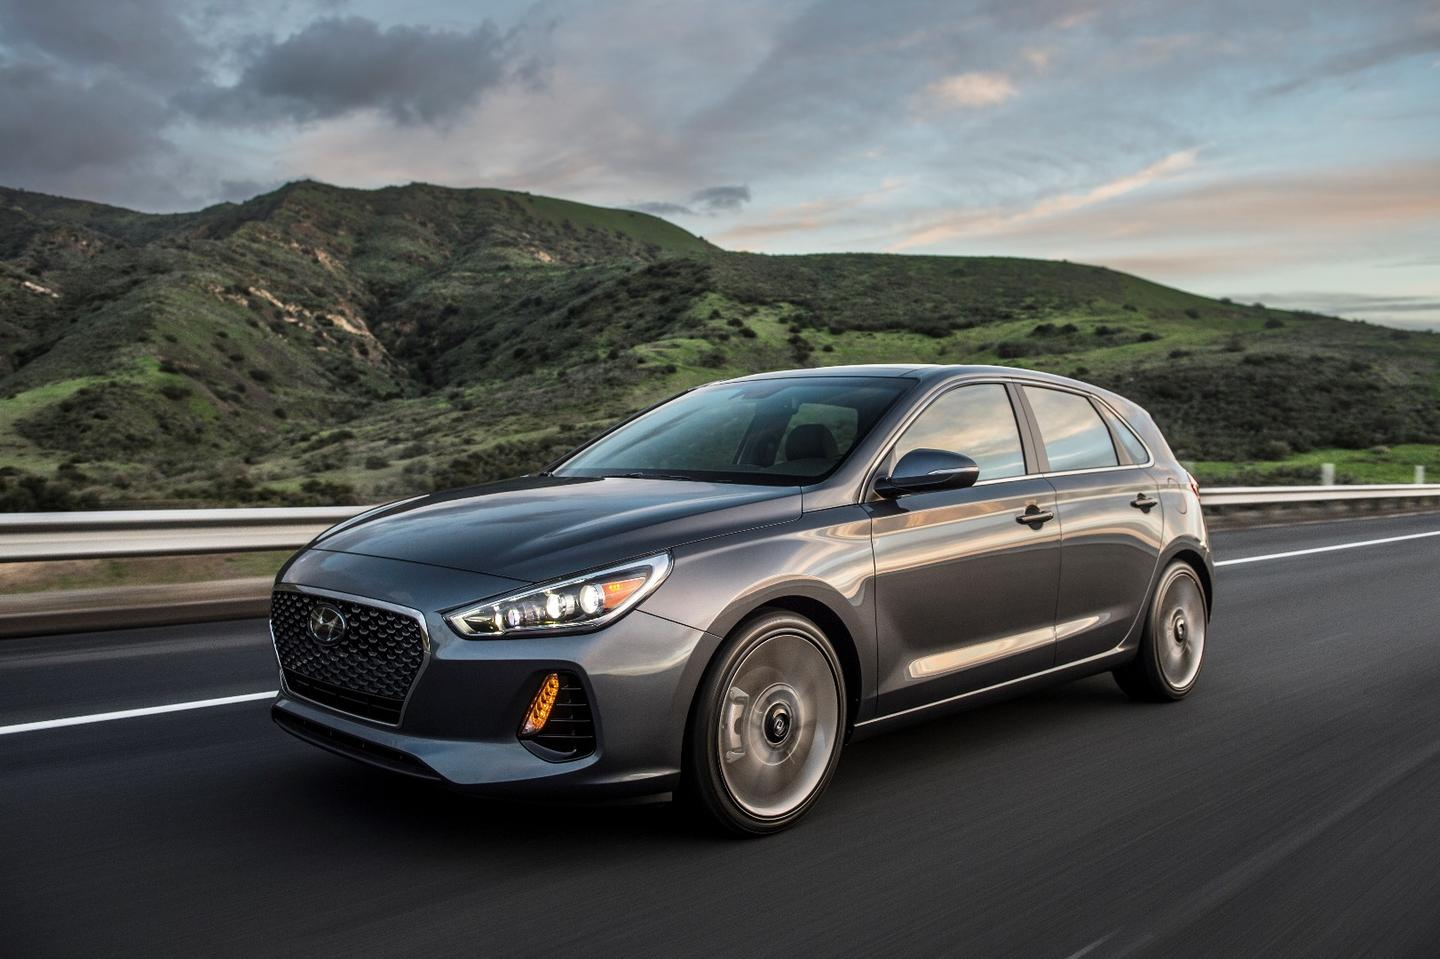 The new Hyundai Elantra GT Sport hatchback is powered by a 1.6-liter turbocharged engine